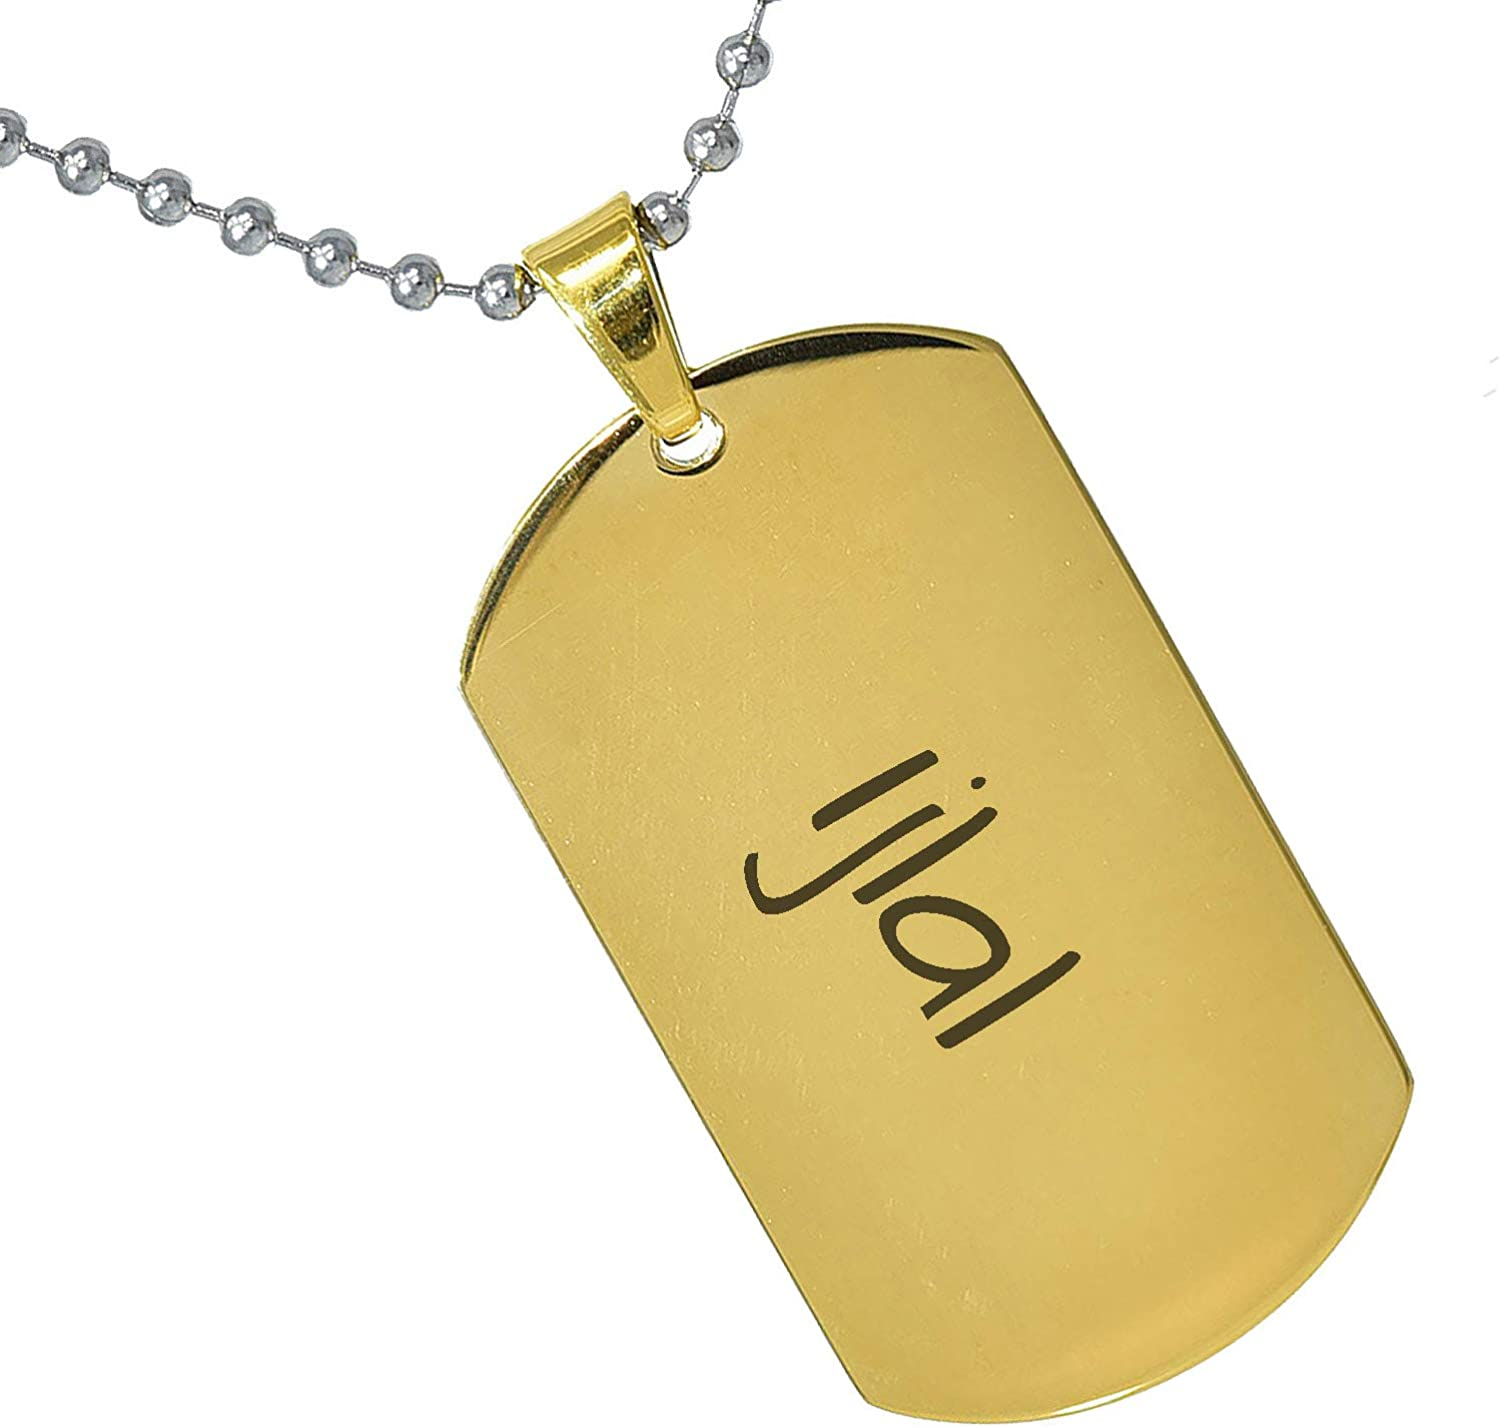 Stainless Steel Silver Gold Black Rose Gold Color Baby Name Ijlal Engraved Personalized Gifts For Son Daughter Boyfriend Girlfriend Initial Customizable Pendant Necklace Dog Tags 24 Ball Chain